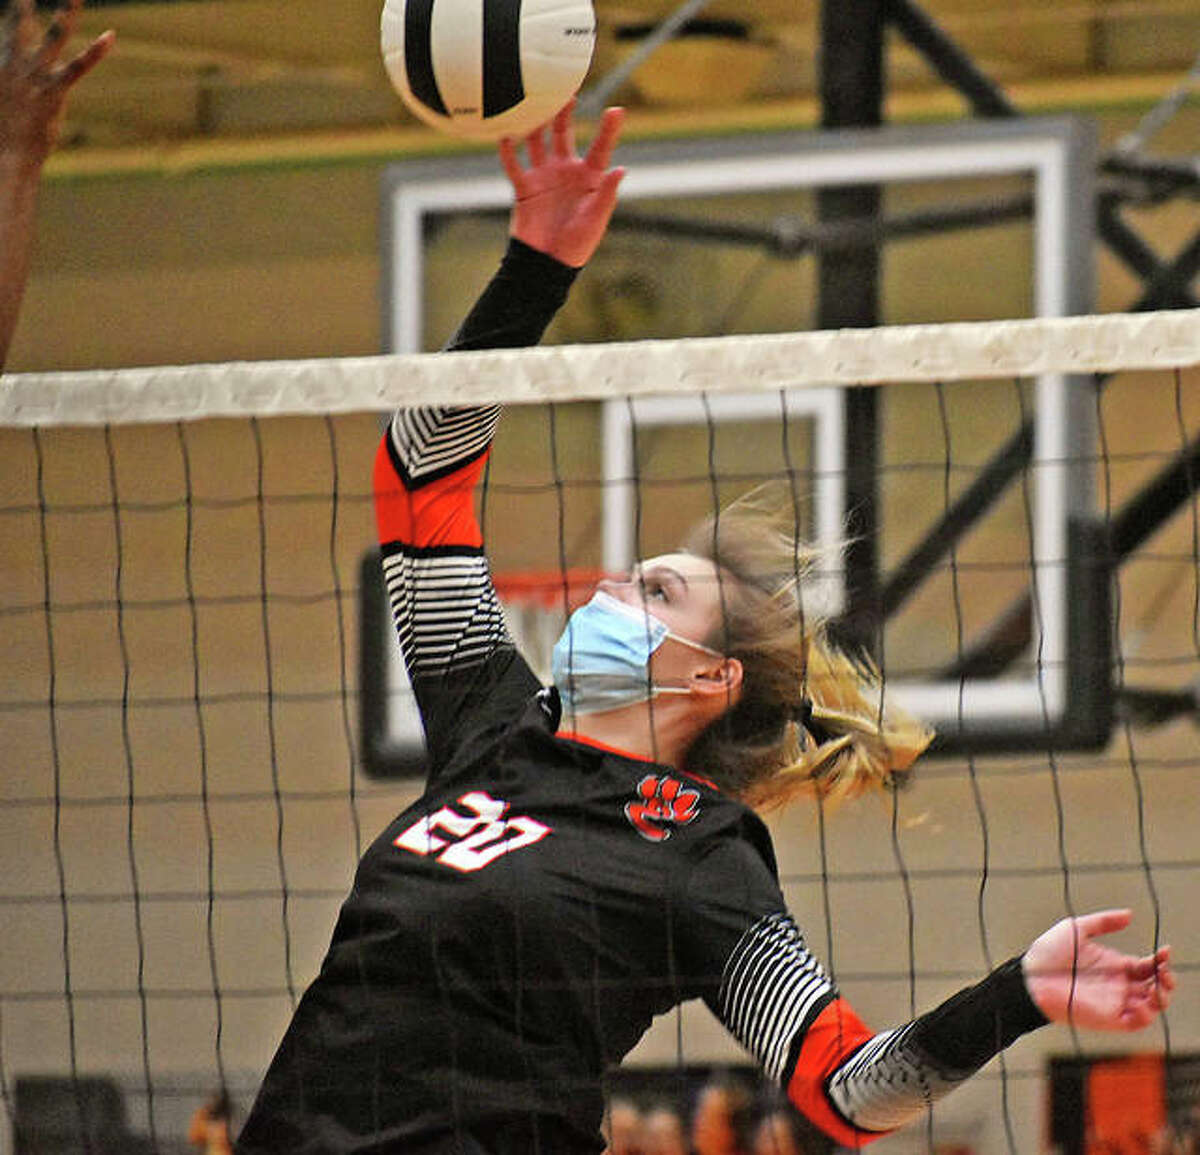 Edwardsville's Storm Suhre attacks during a match for the Tigers last spring. Suhre was a four-year starter and three-time All-SWC pick for the Tigers.